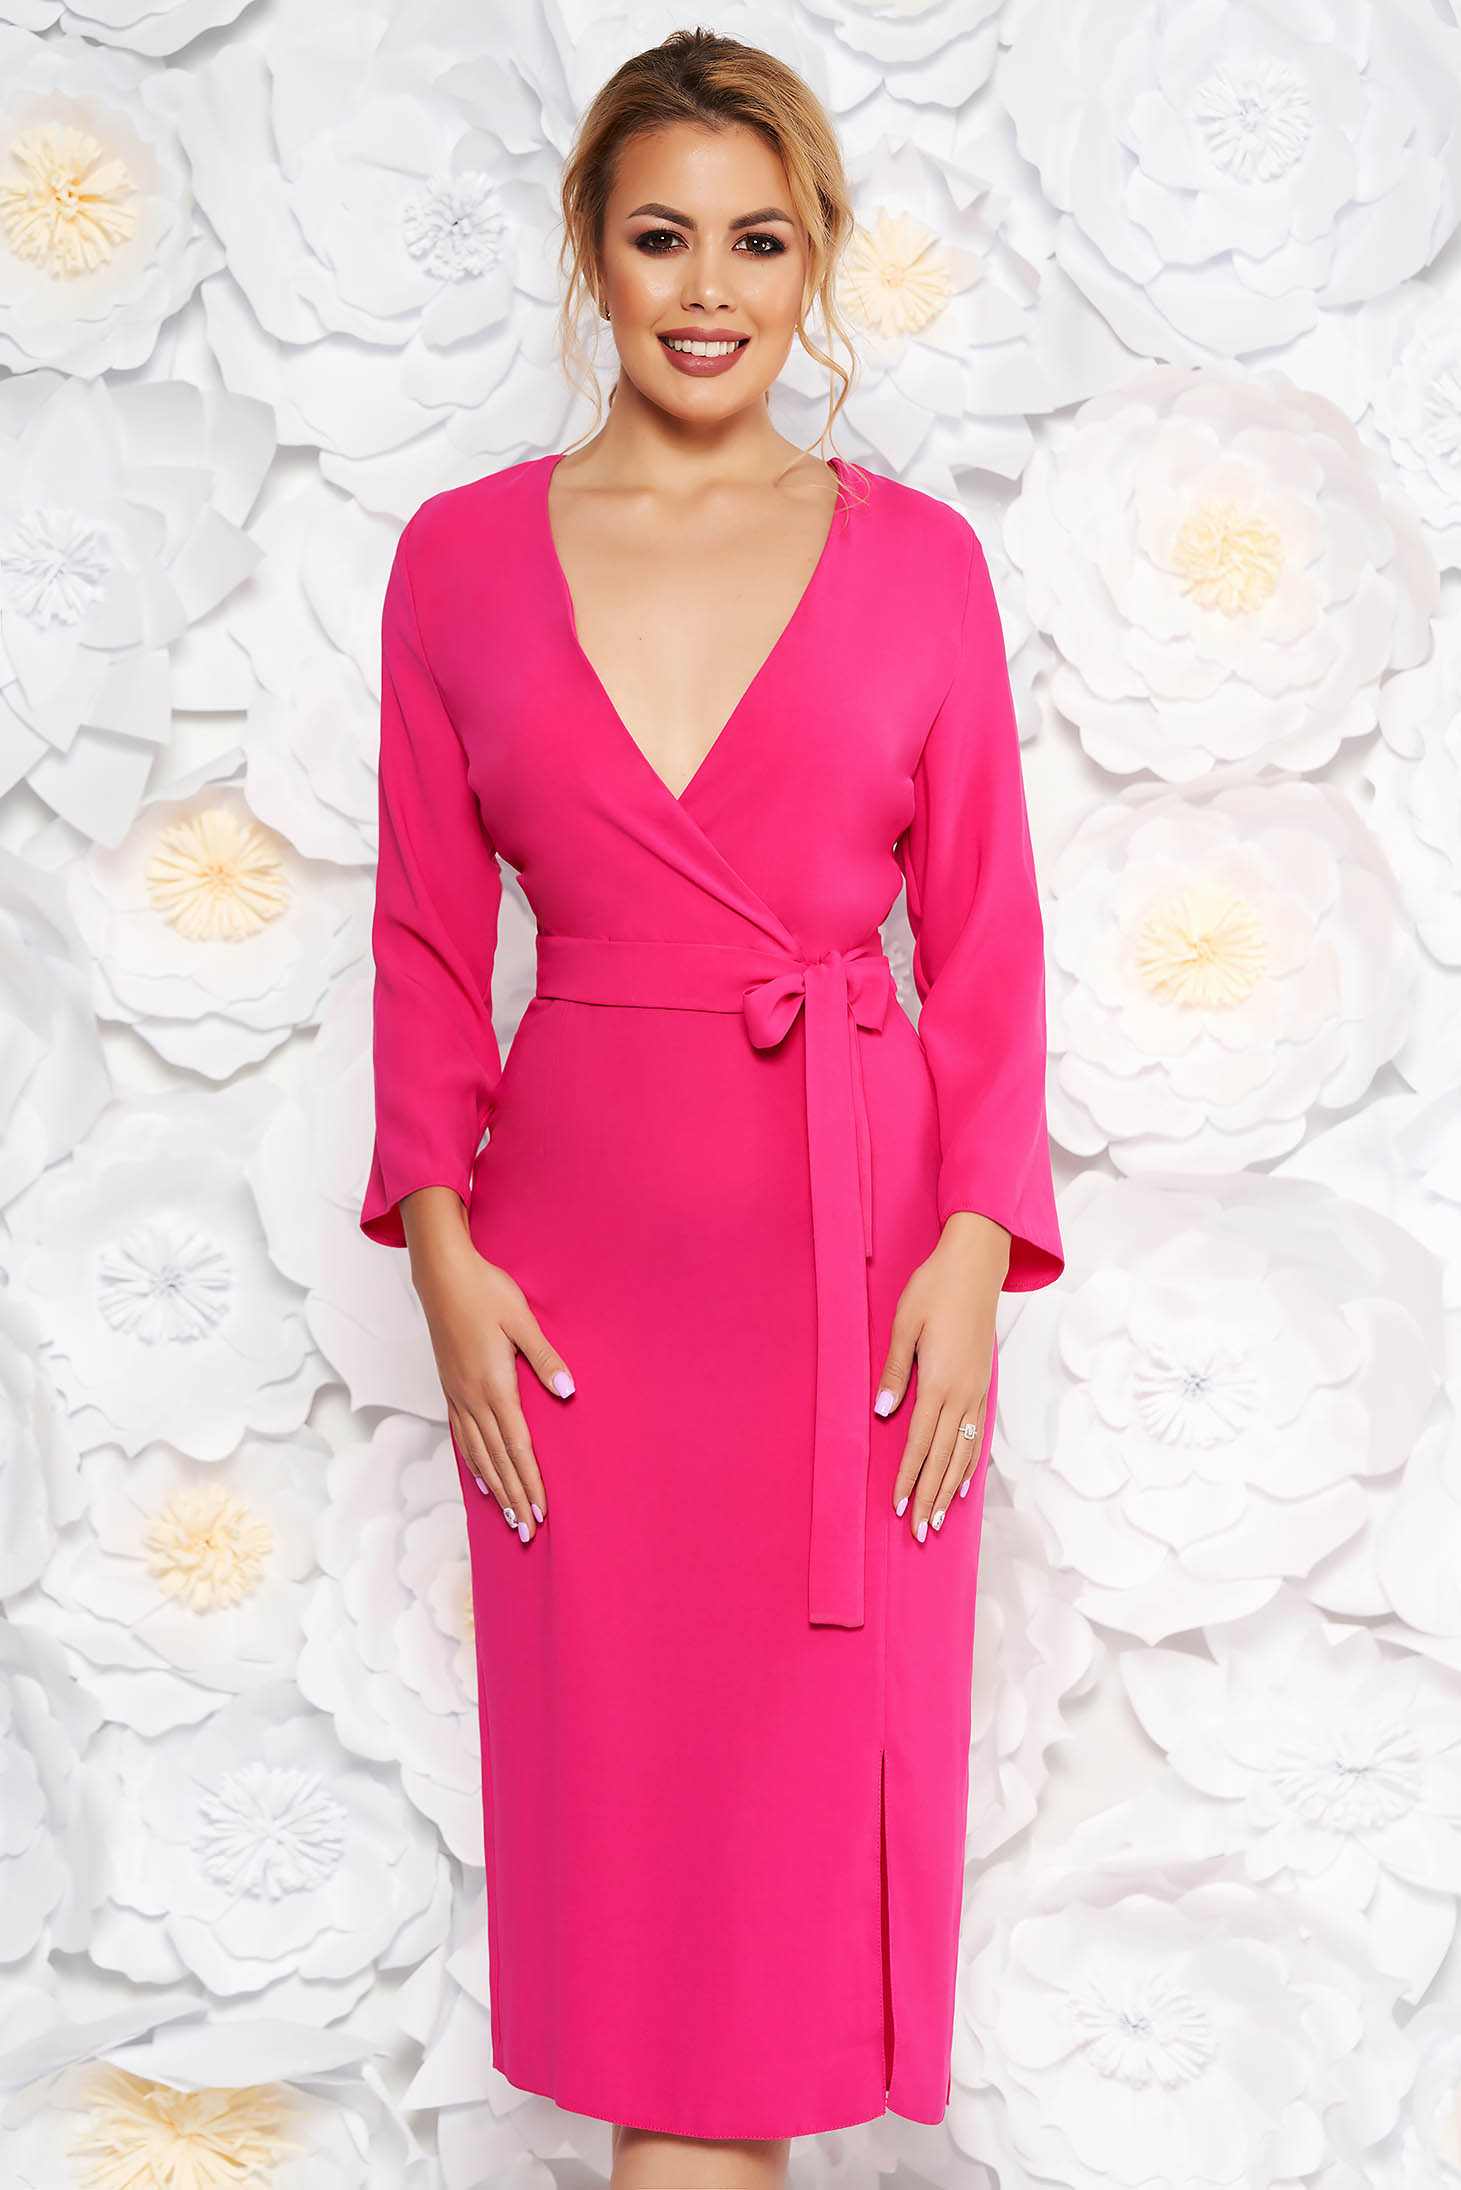 StarShinerS pink elegant dress with v-neckline nonelastic fabric accessorized with tied waistband